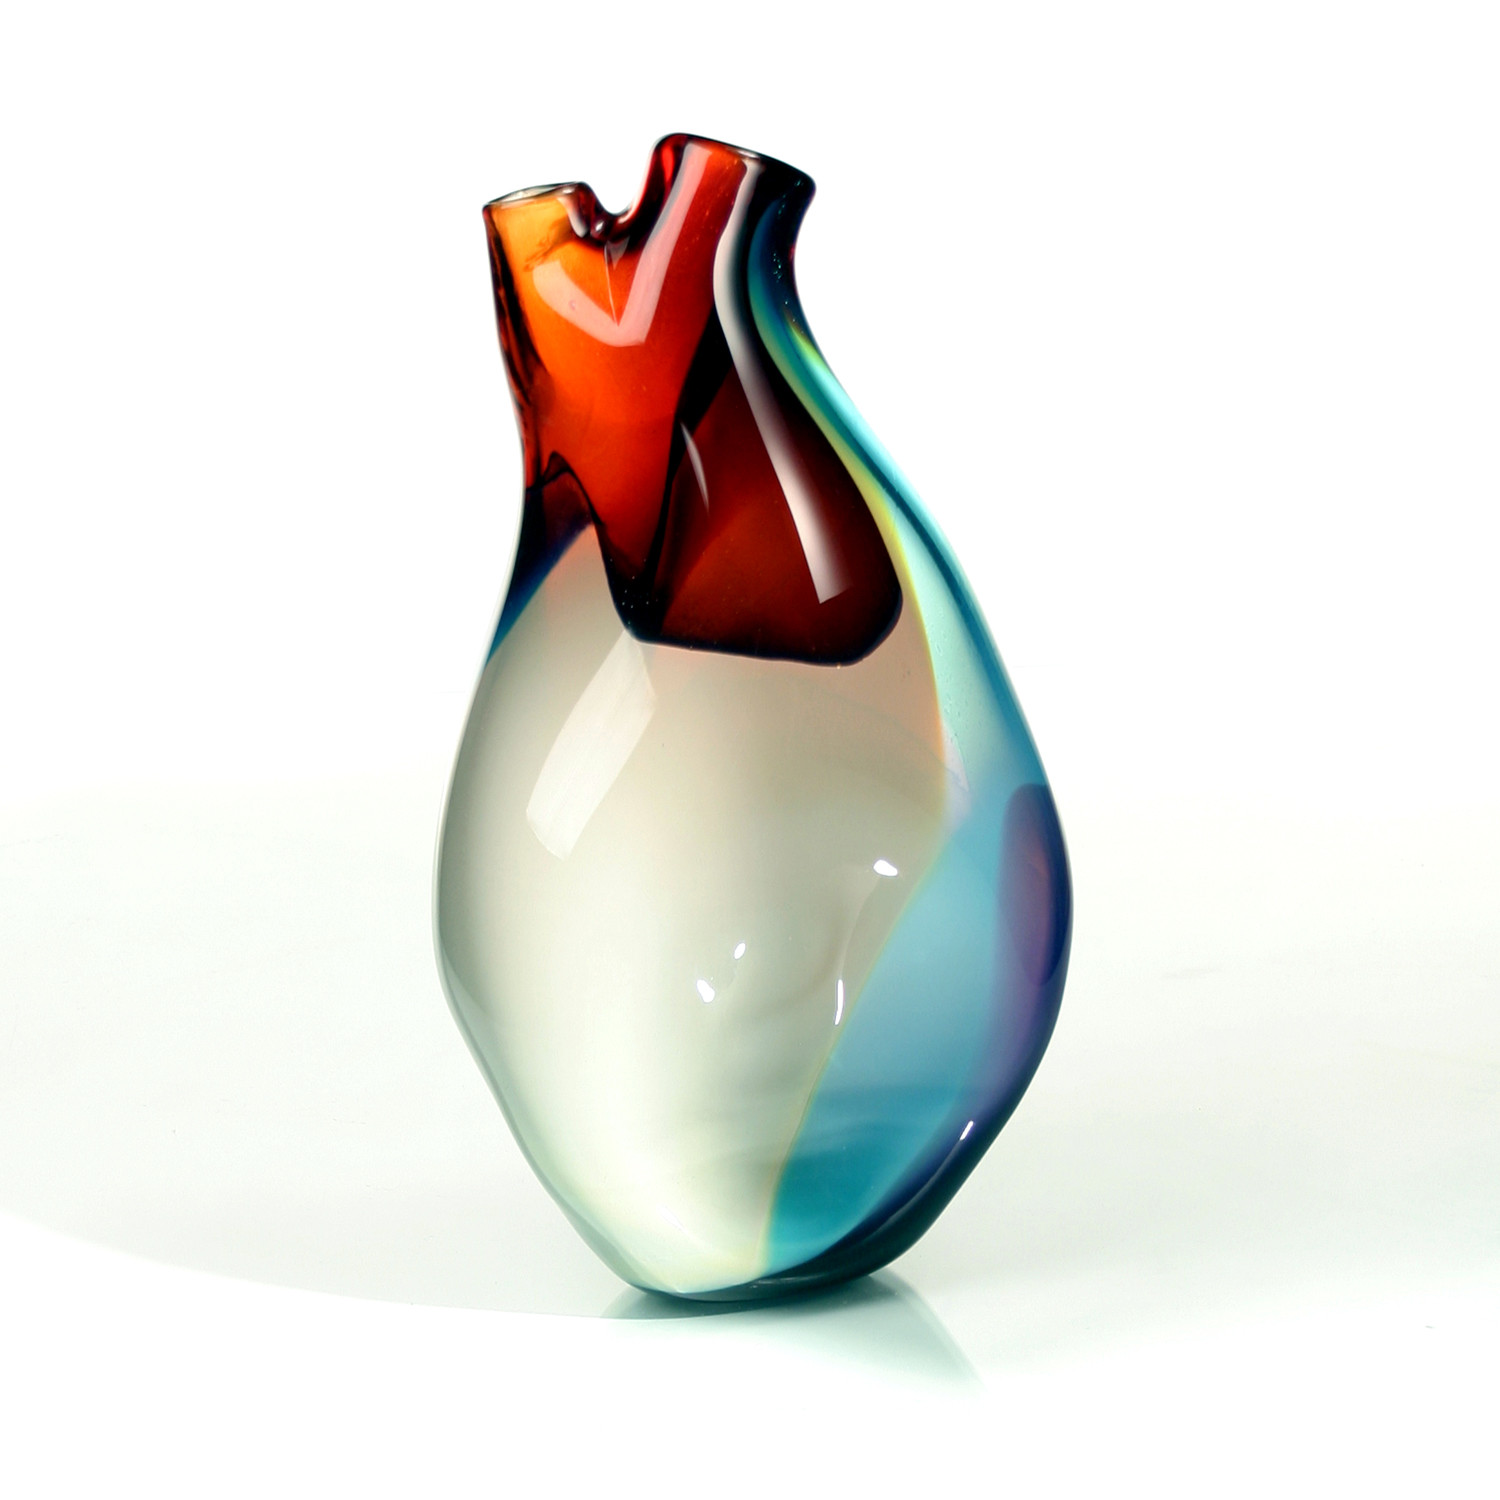 Ventricle Vessel Shiny by Eva Milinkovic & Kriston Gene